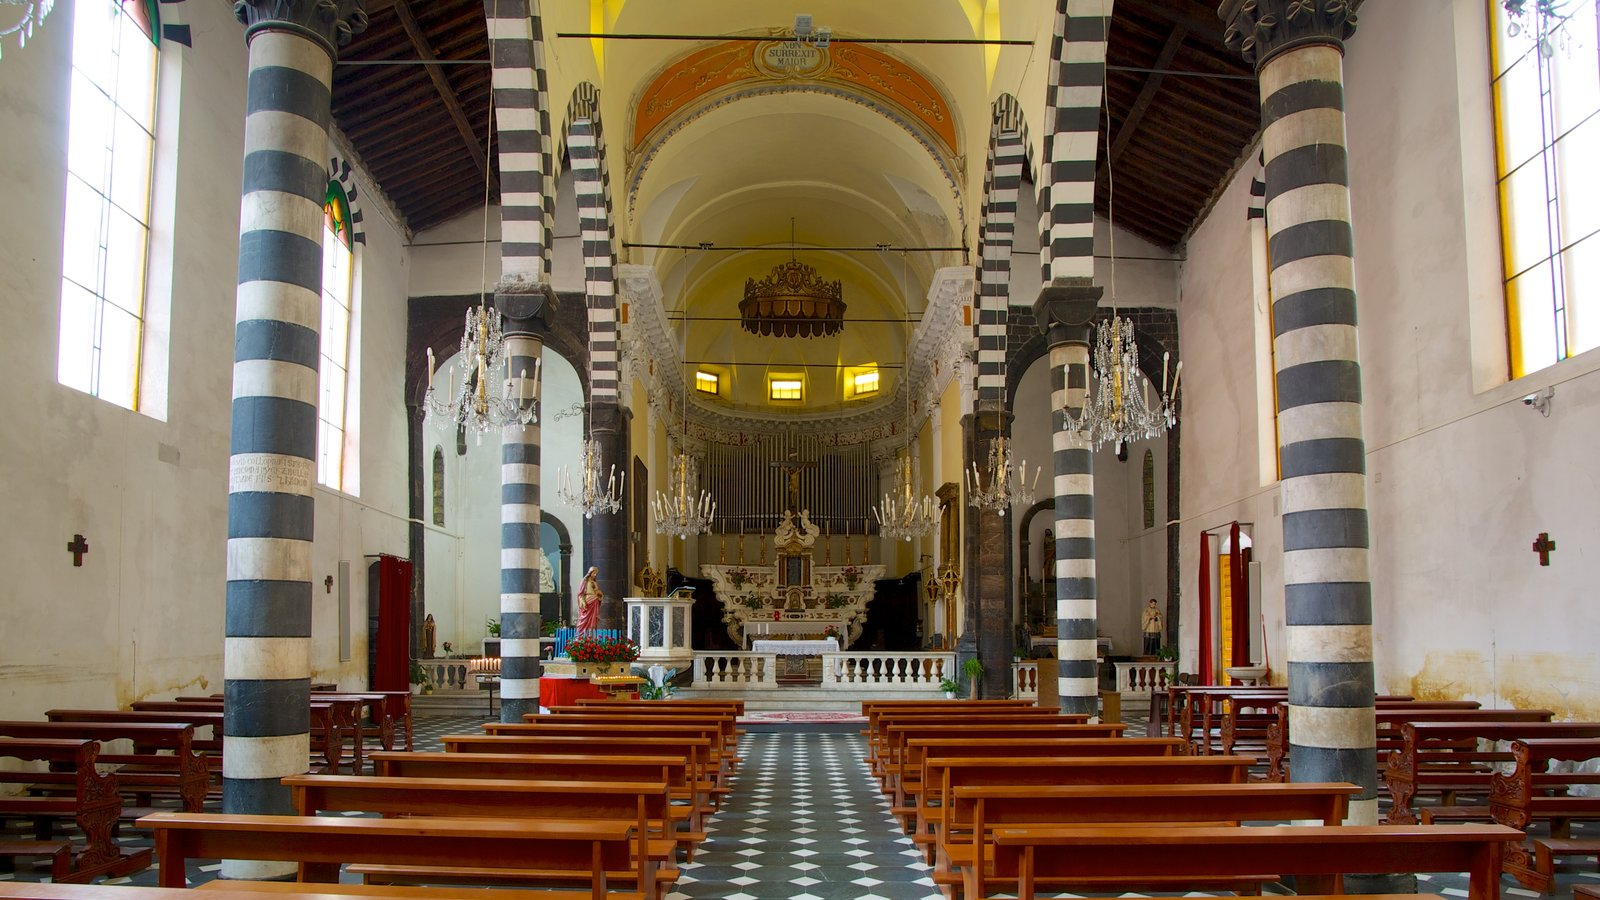 Monterosso al Mare showing a church or cathedral and interior views